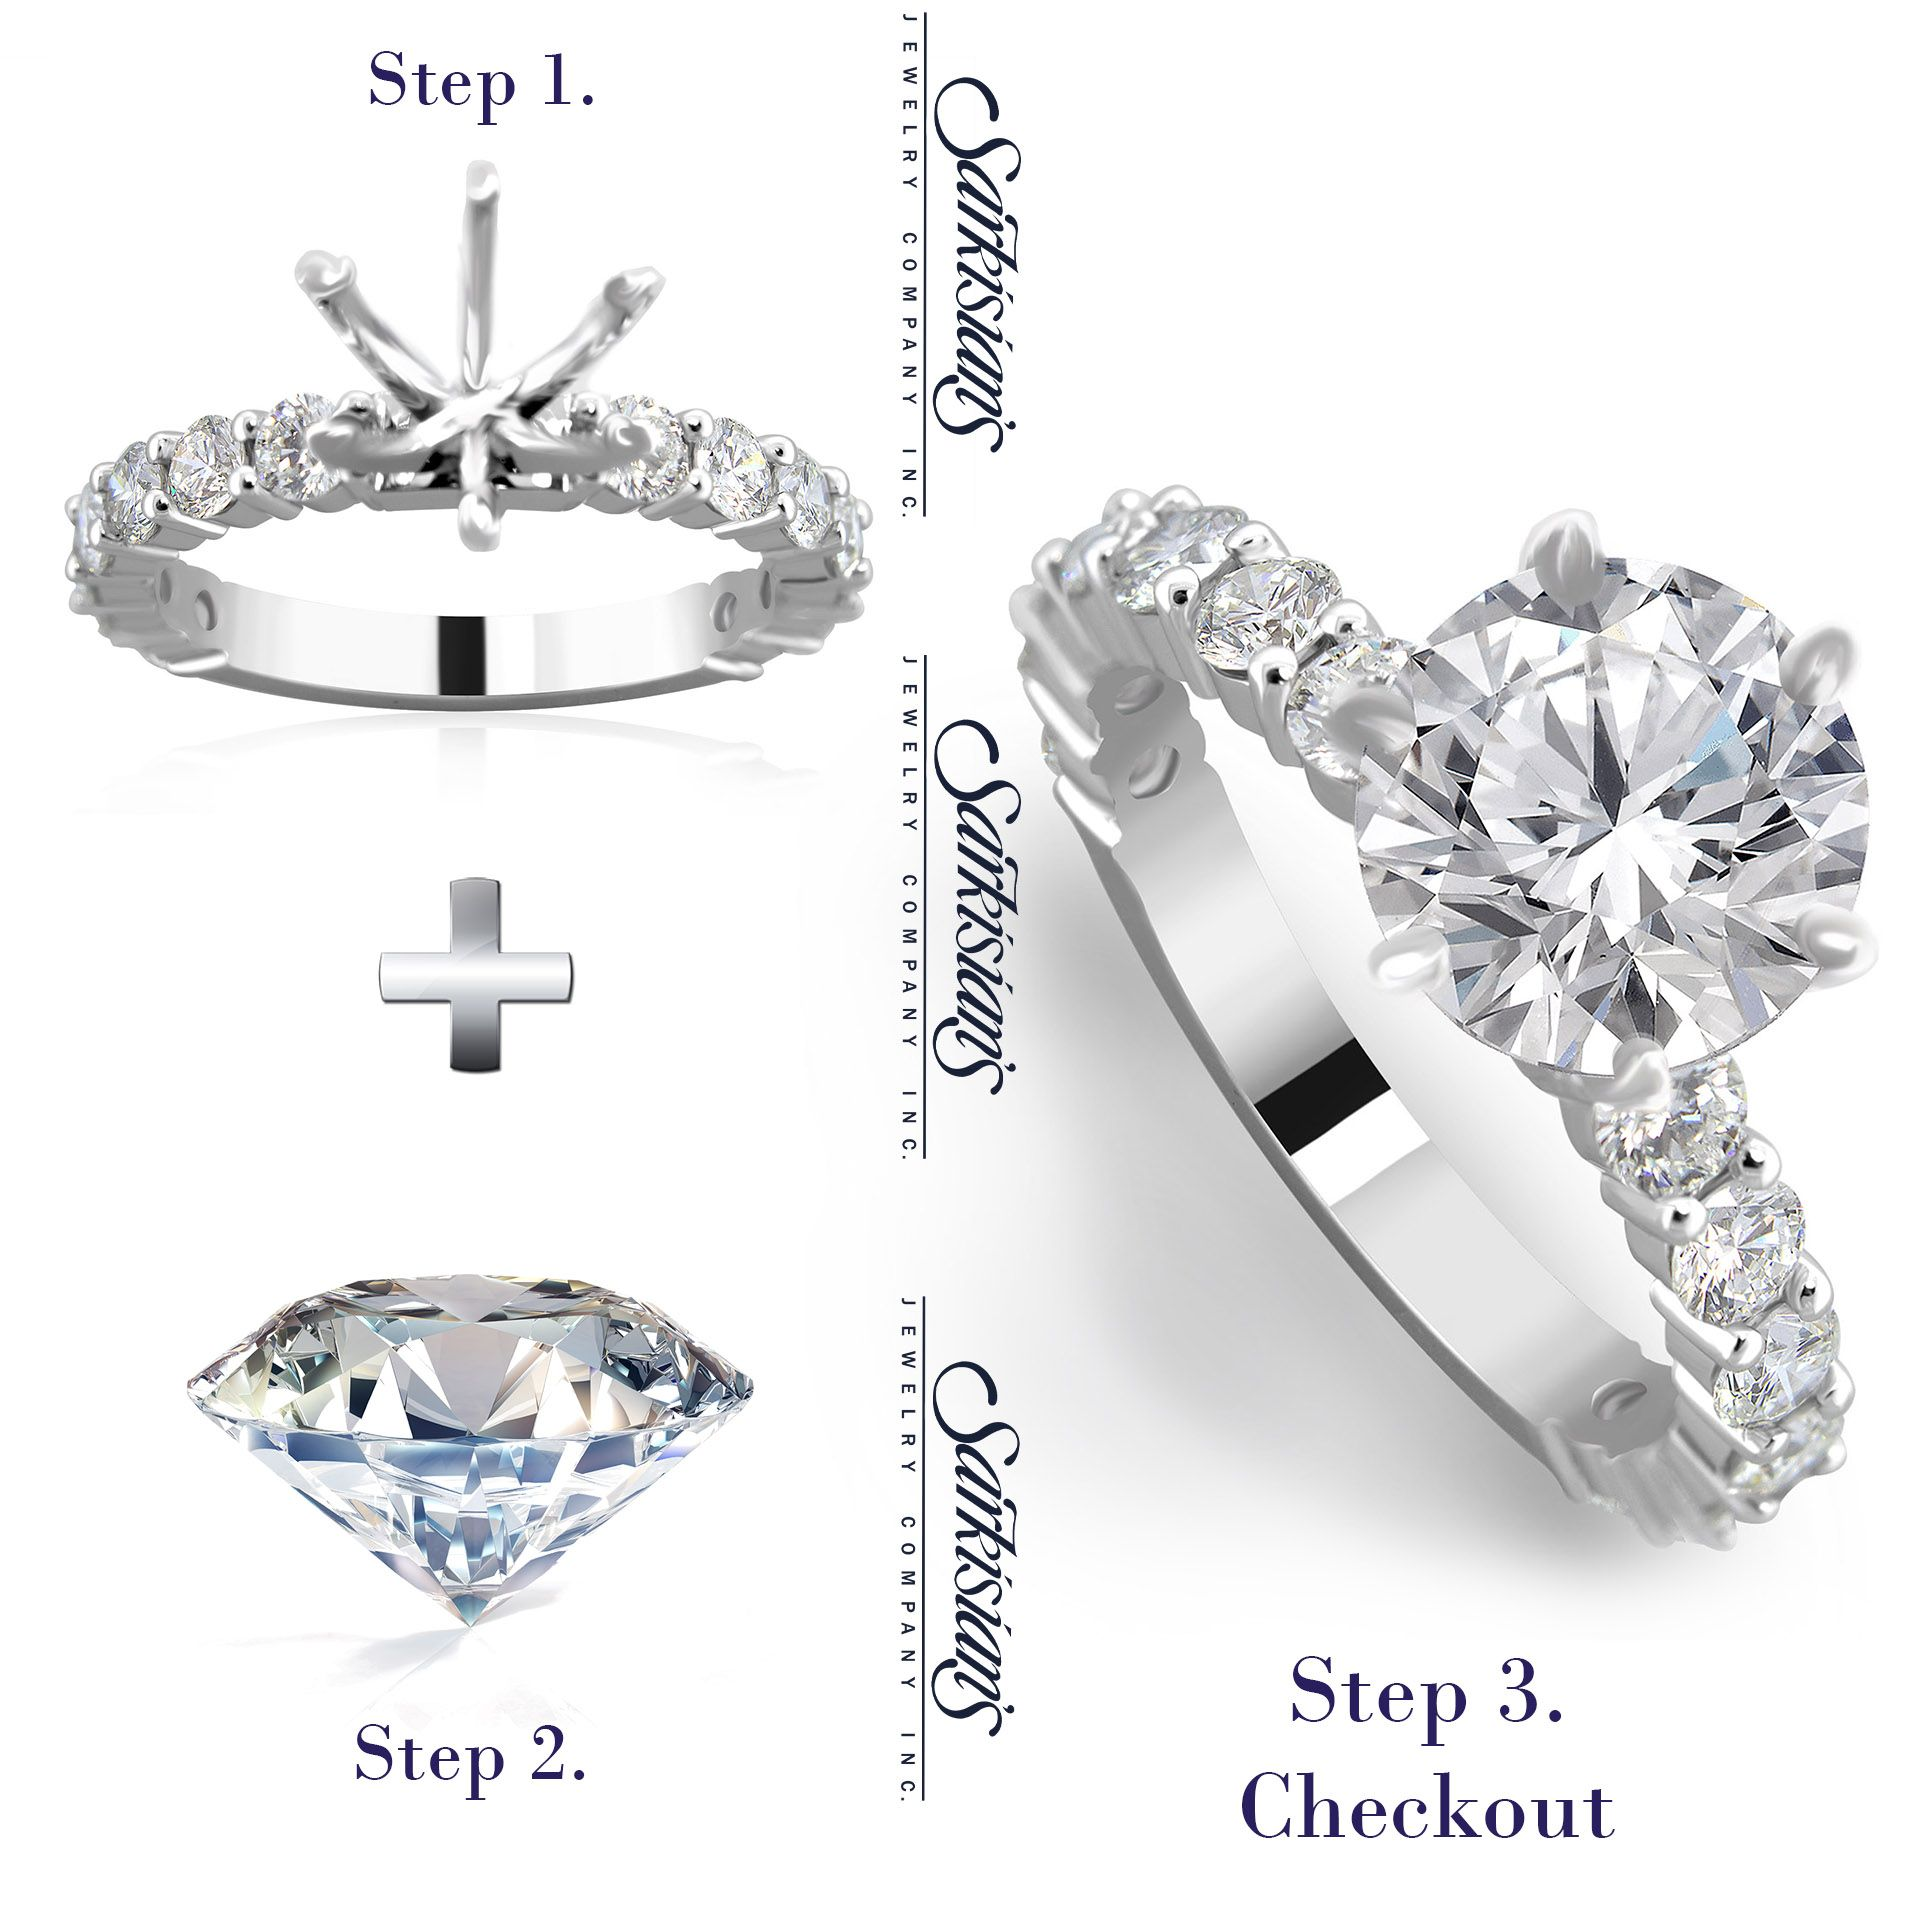 👨 🎨👨 🔧💍Build your own engagement ring by 3 easy steps 1